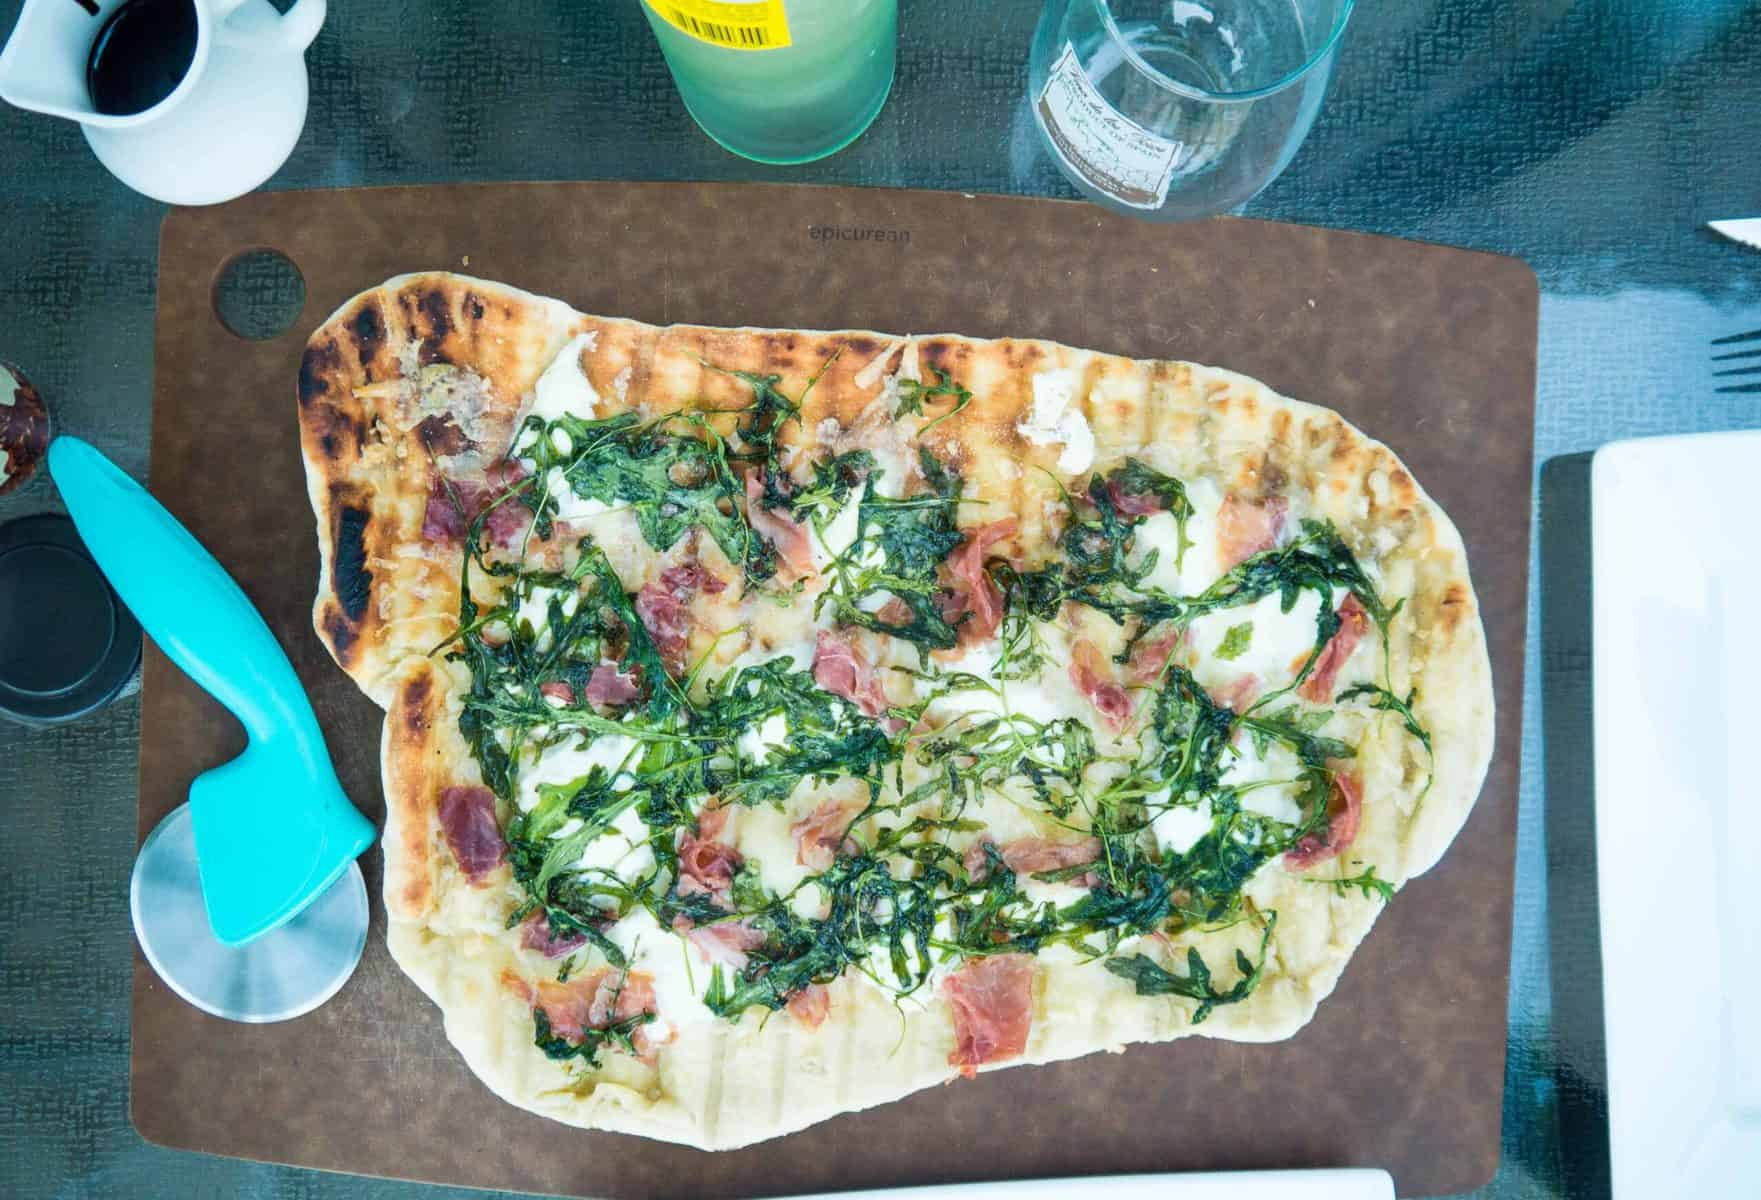 Grilled Prosciutto And Garlic Ricotta Pizza With Arugula And Balsamic Glaze Sip And Spice